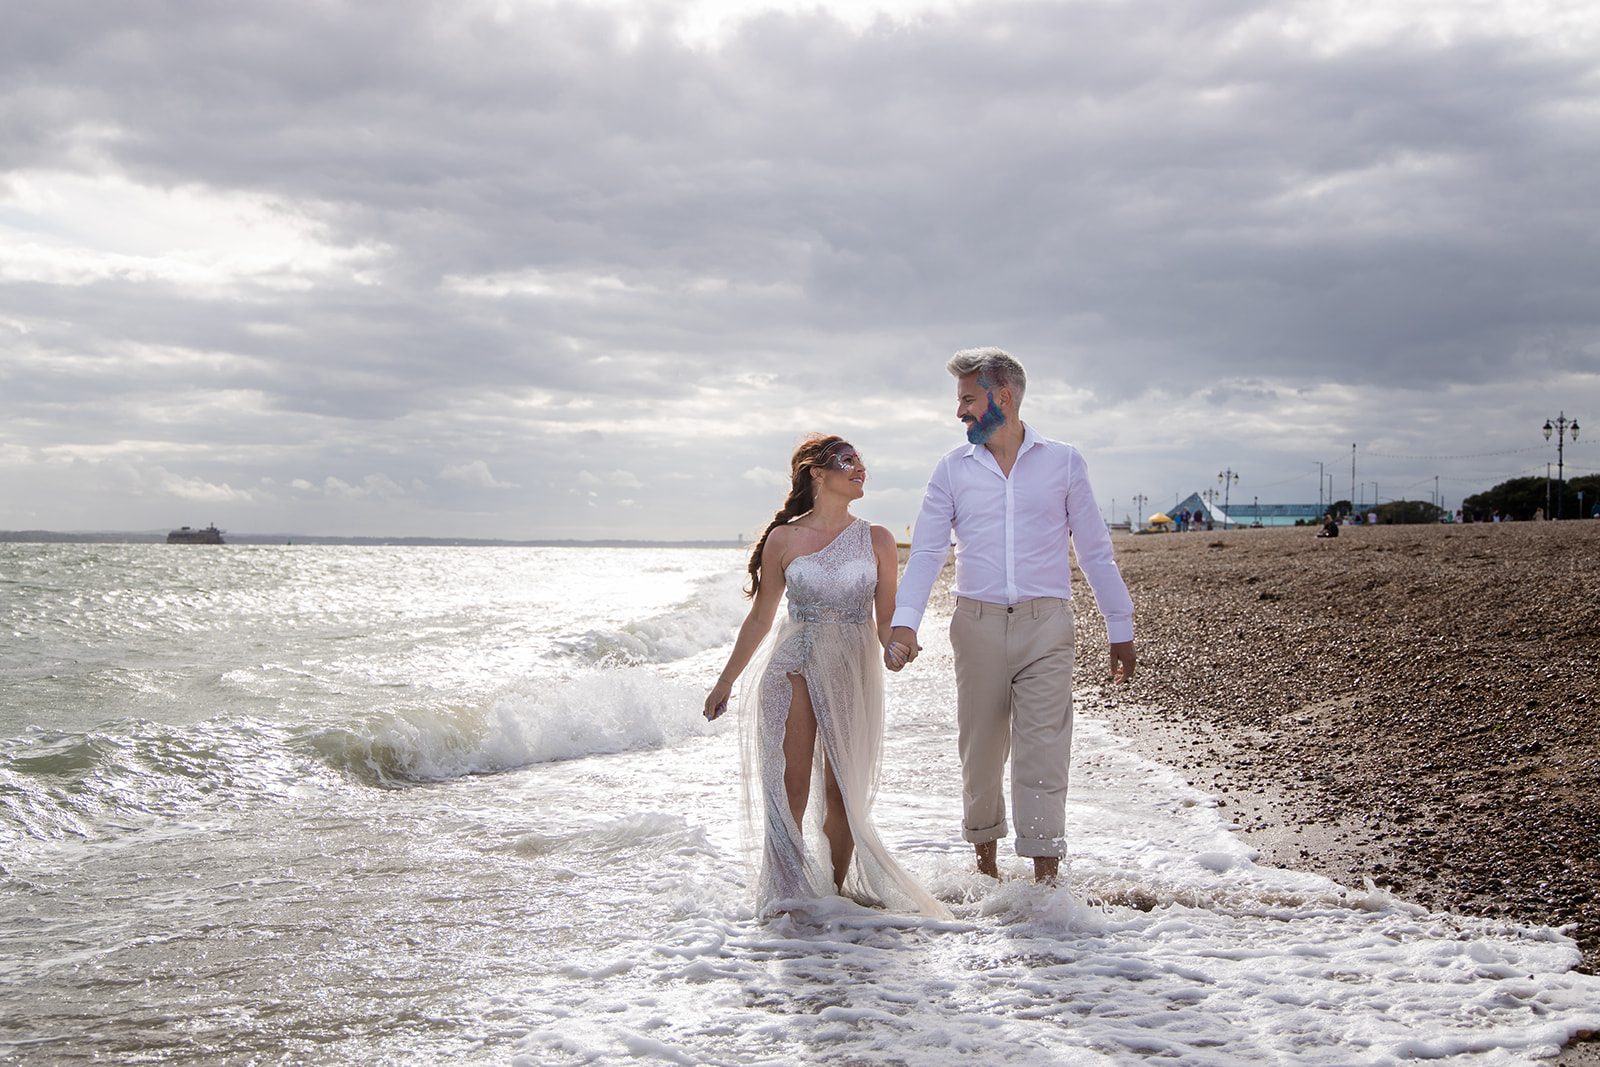 mermaid wedding - beach wedding - quirky wedding - unique wedding - alternative seaside wedding - alternative wedding - bride and groom walking on the beach